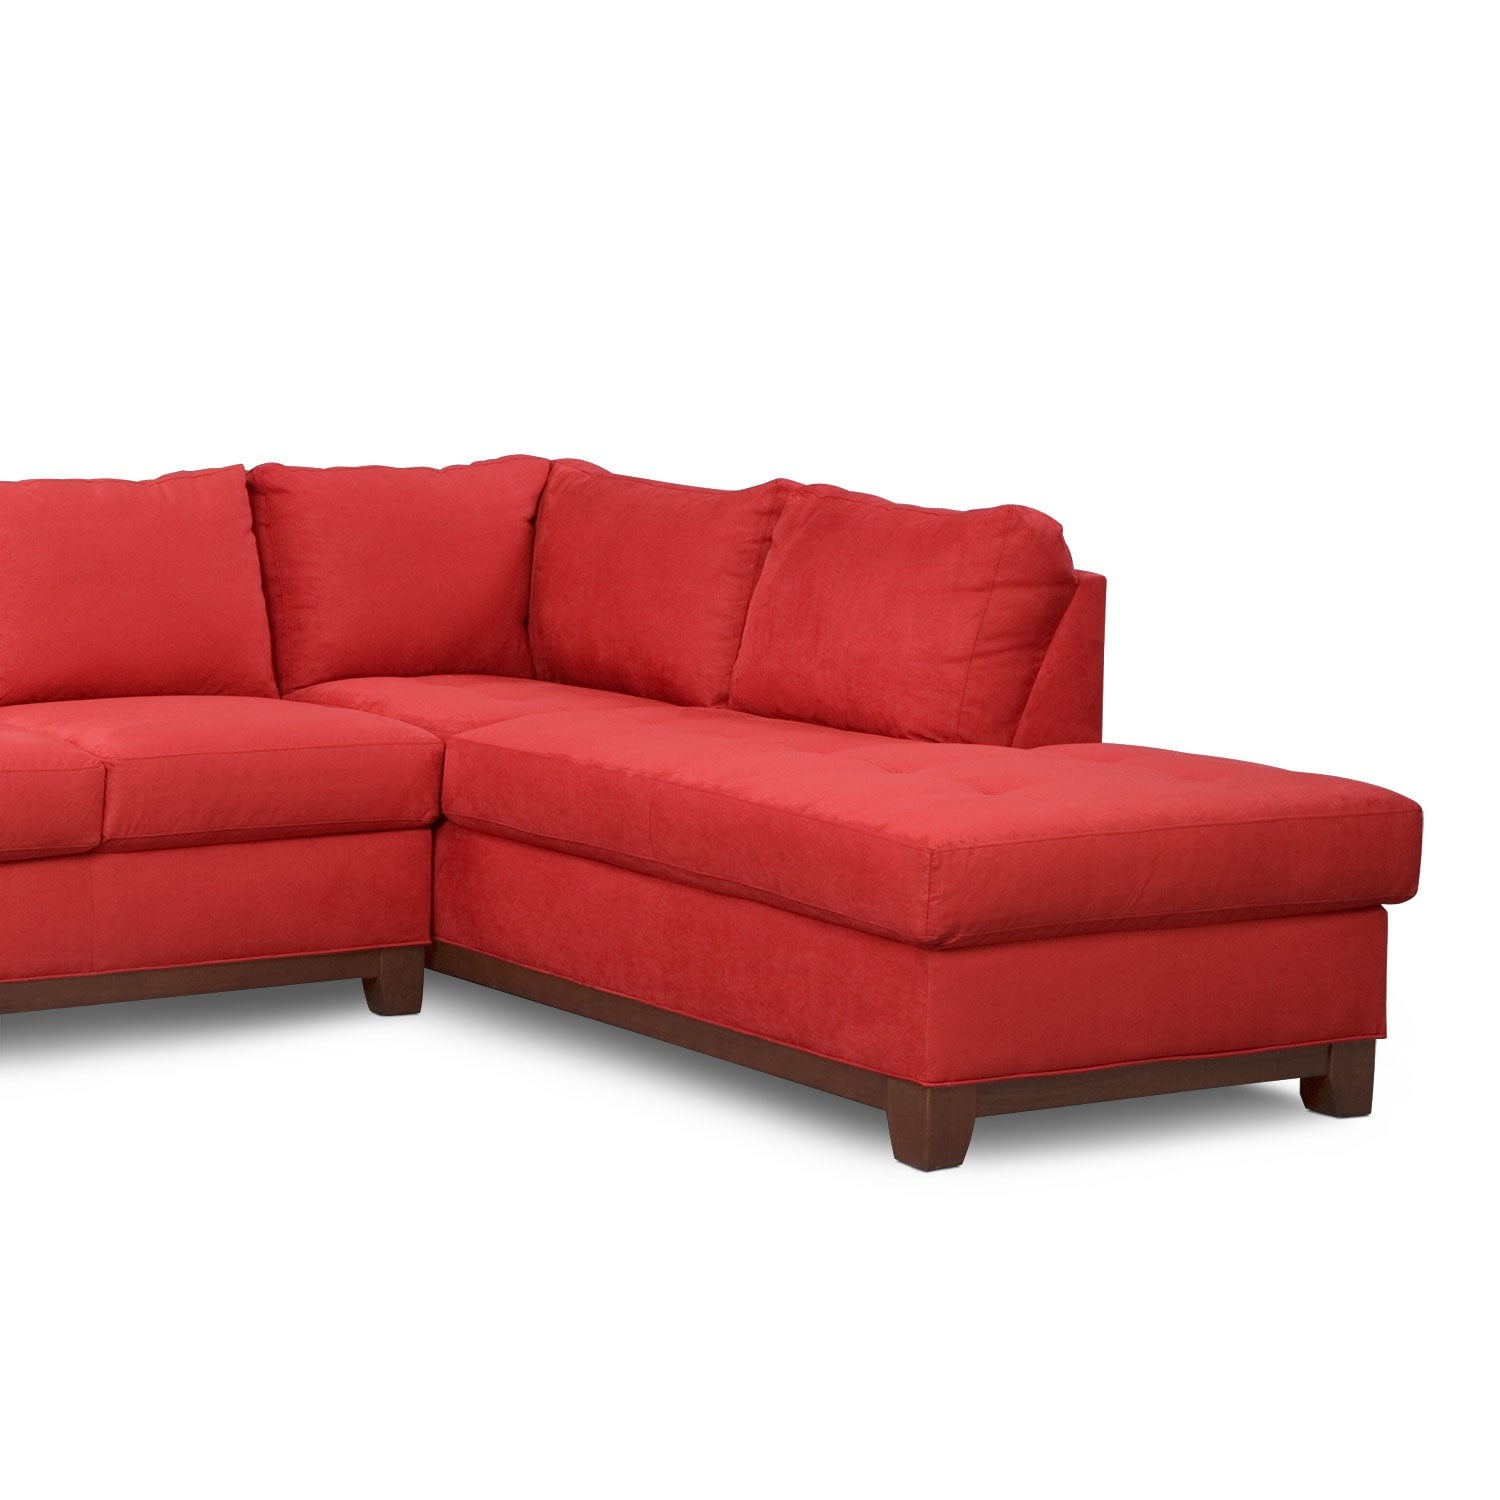 Soho 2 piece sectional with right facing chaise red for Red sectional sofa value city